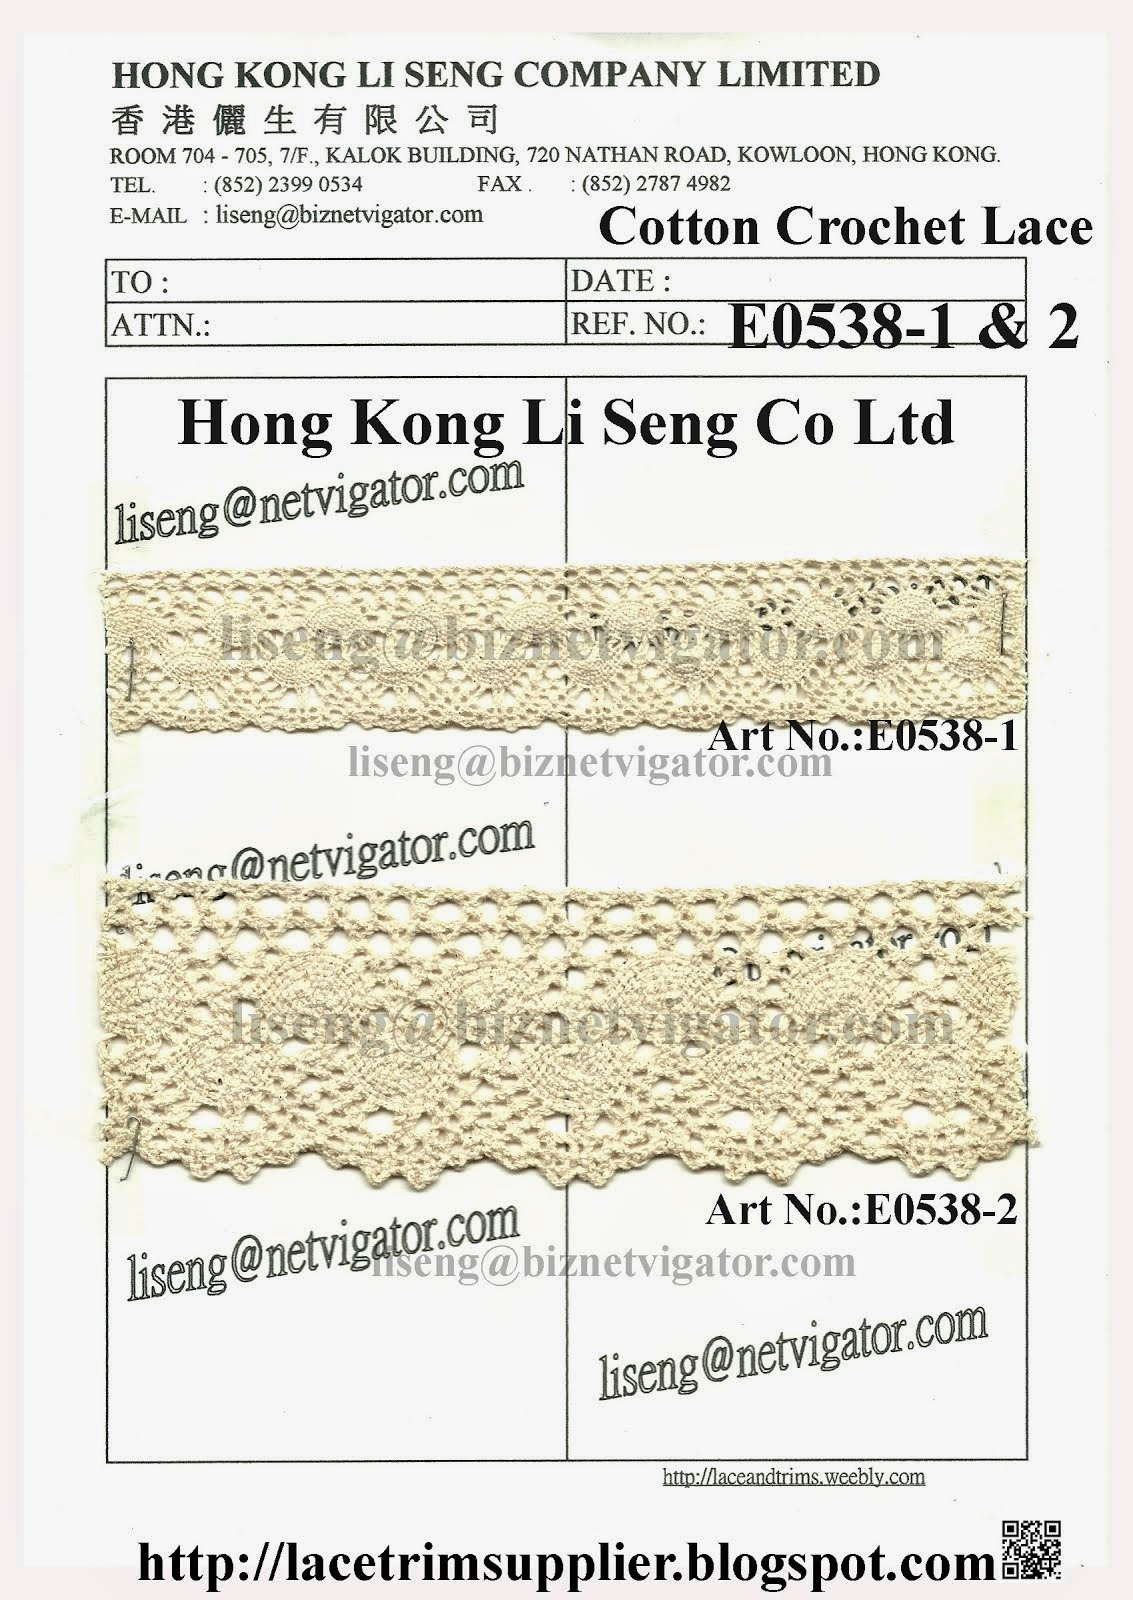 Cotton Crochet Lace Trims Factory - Hong Kong Li Seng Co Ltd